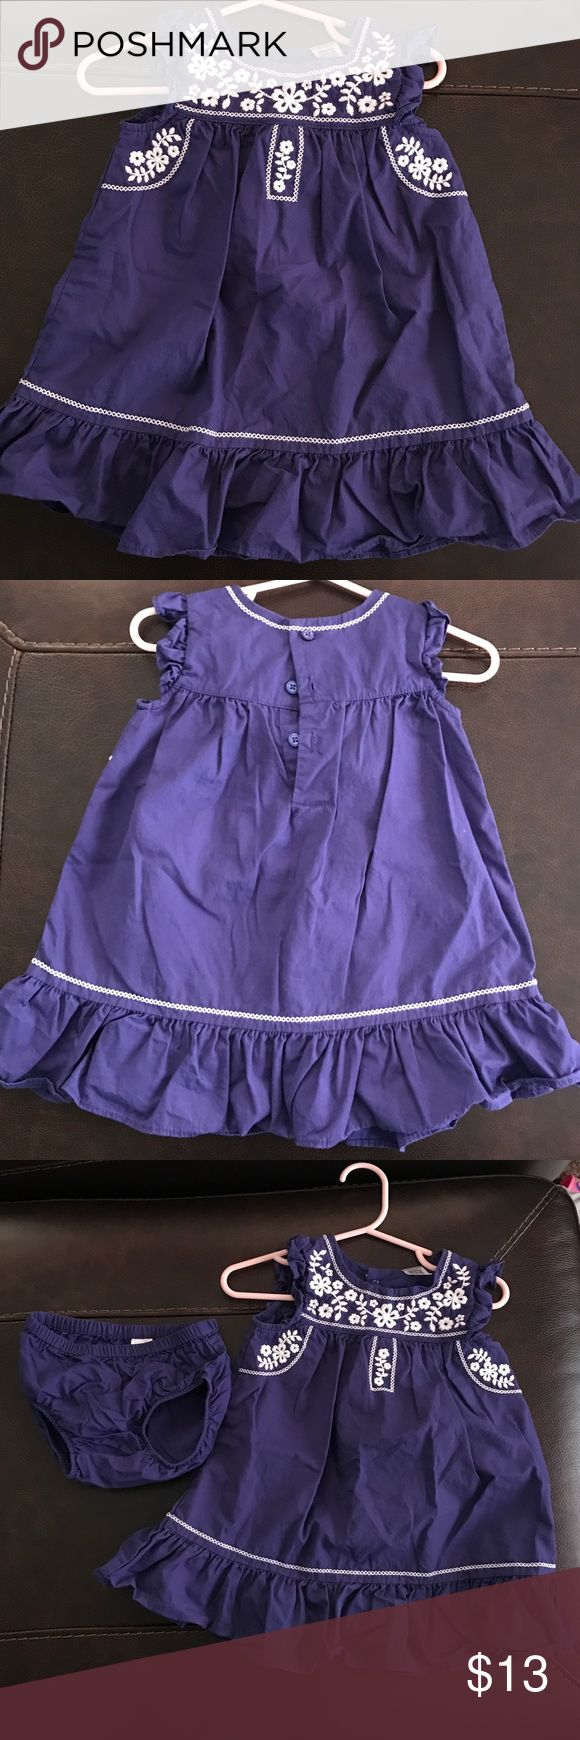 Carter's Dress - 12m - NWOT Carter's Dress - 12m - NWOT - This has been washed, but never worn. It was to big for my daughter & she never got to wear it. Carter's Dresses Casual